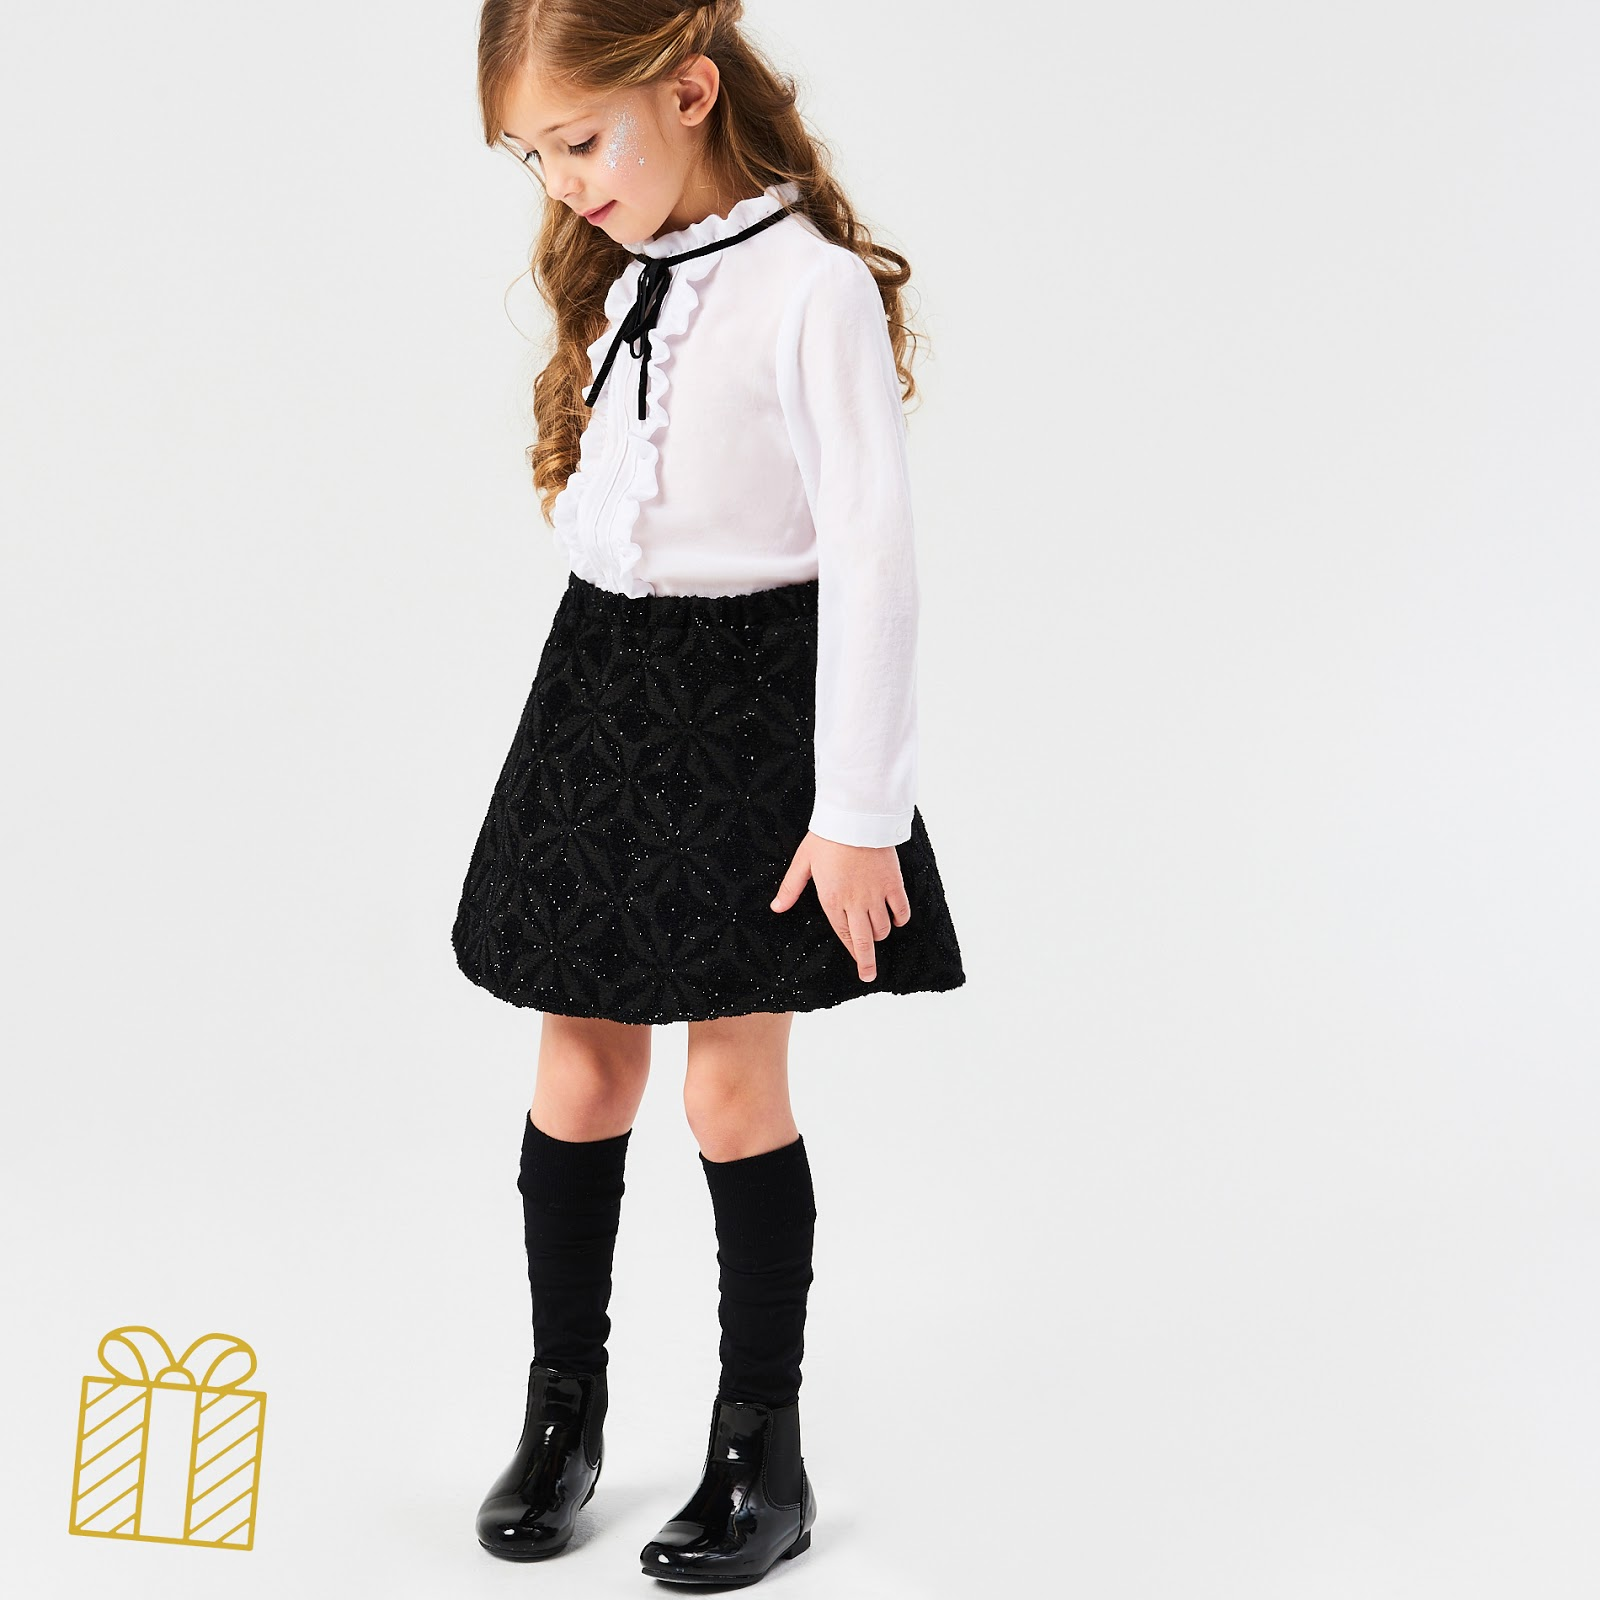 http://www.reserved.com/sk/sk/kids/all/girl/kids/dresses/pt488-99x/shiny-skirt